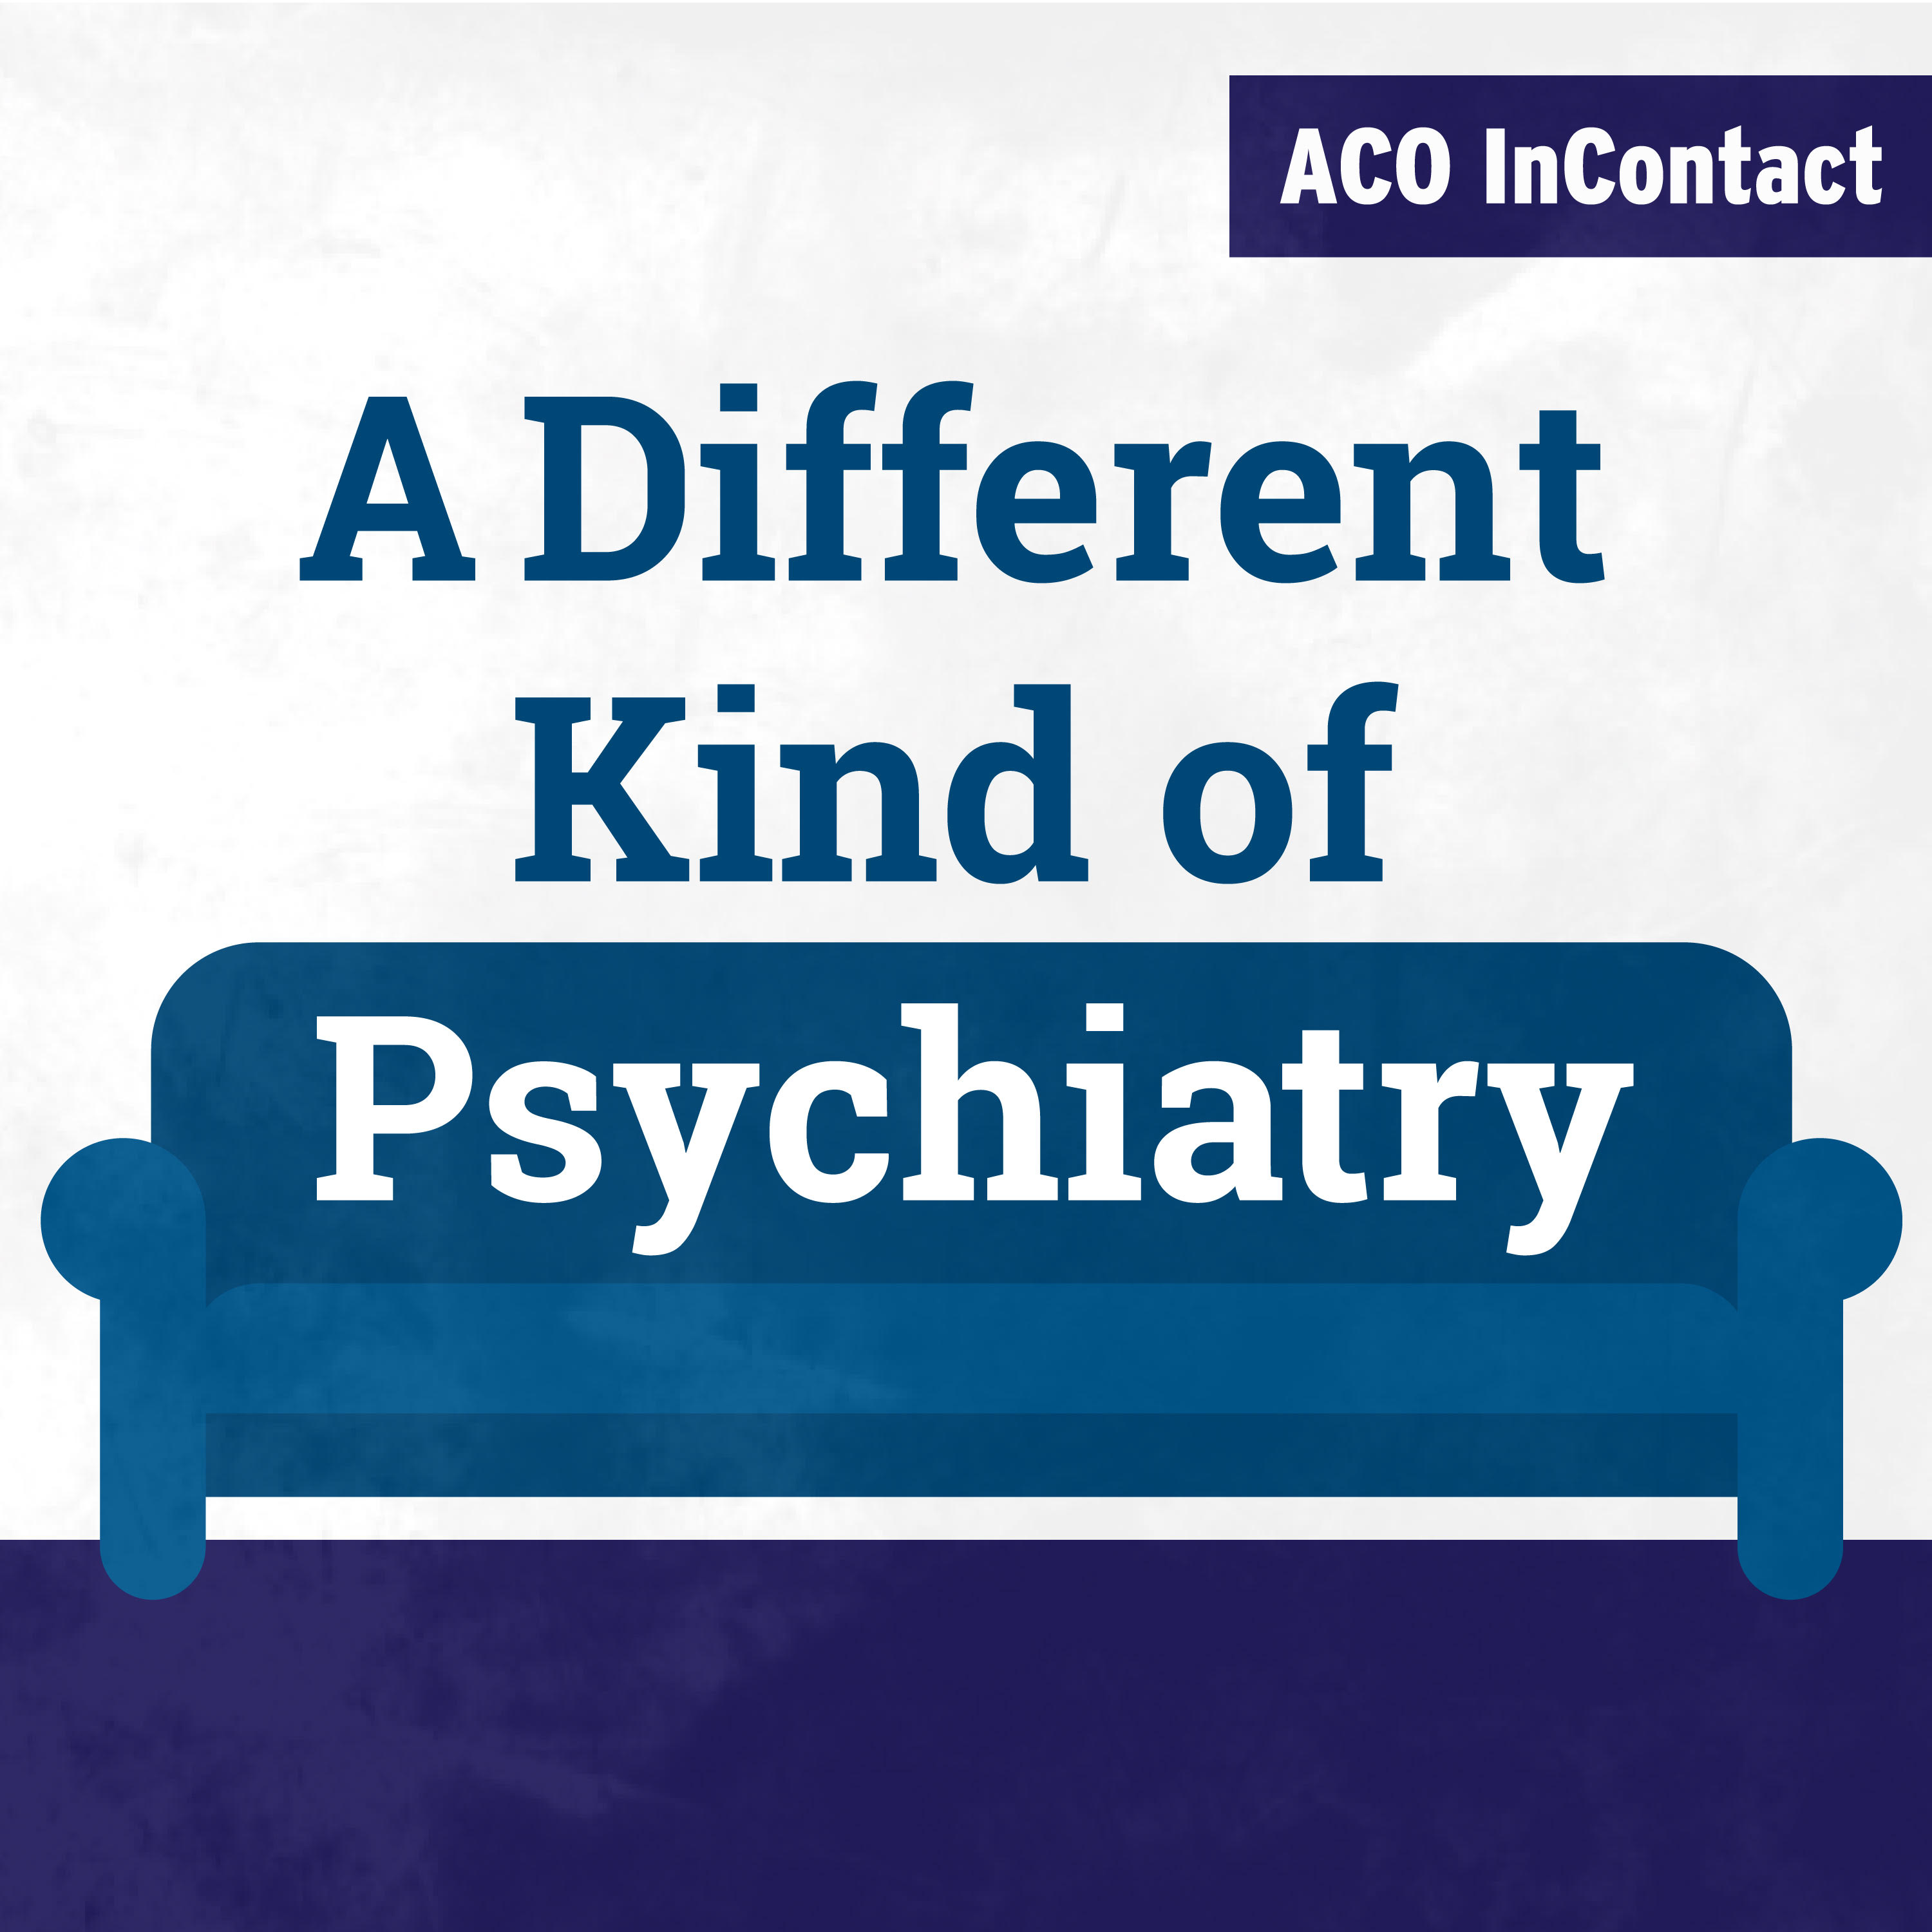 A Different Kind of Psychiatry